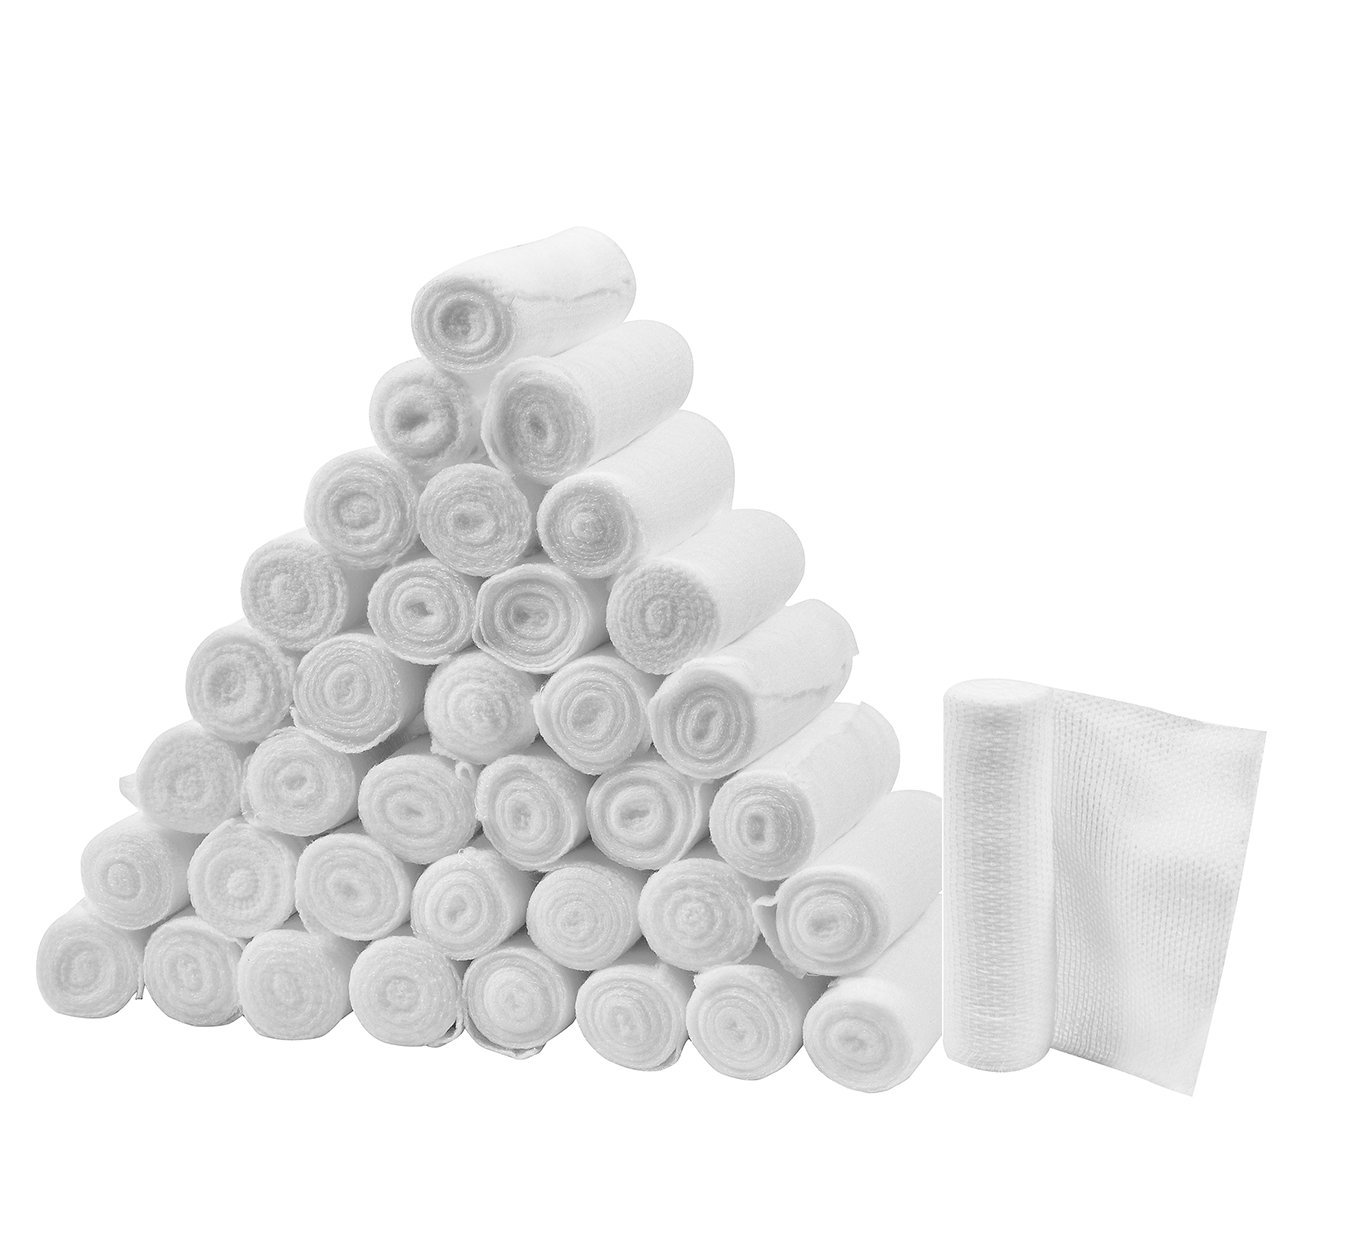 FlexTrek Premium 36-Pack 4 Inch Conforming Stretch Gauze Bandage Rolls - Latex Free - 4'' x 4.1 Yards Stretched